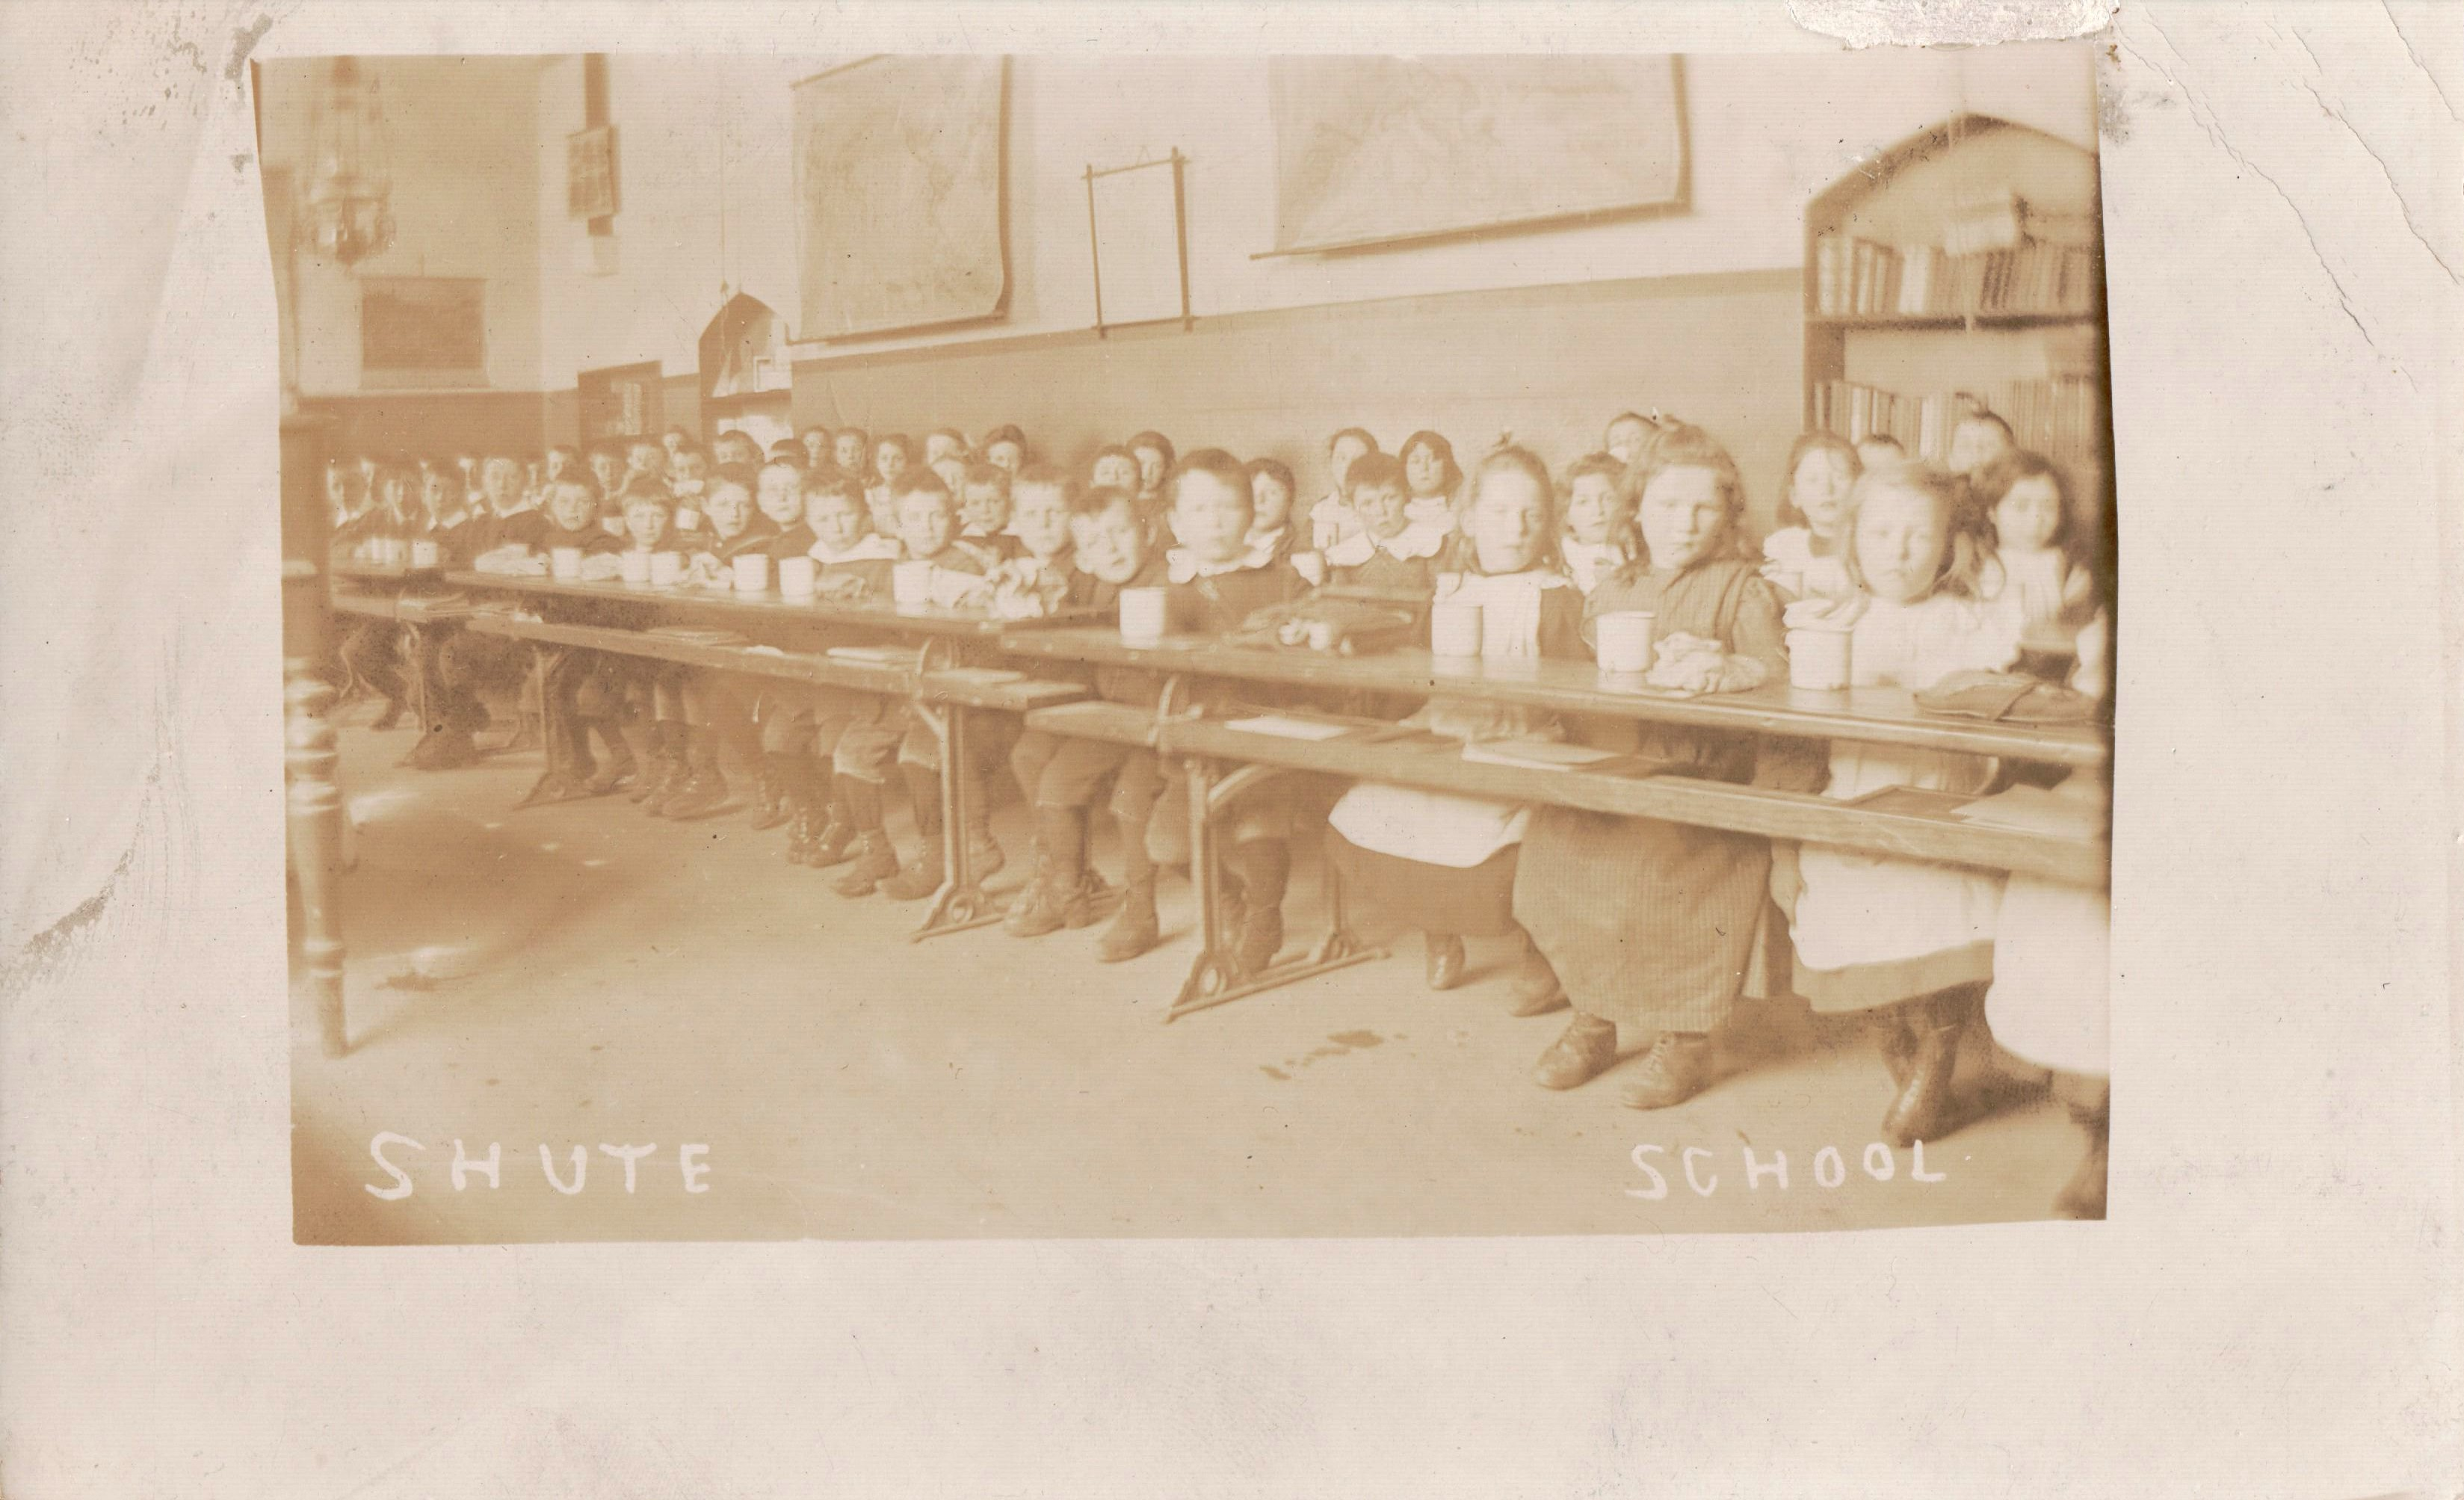 A Class at Shute Primary School